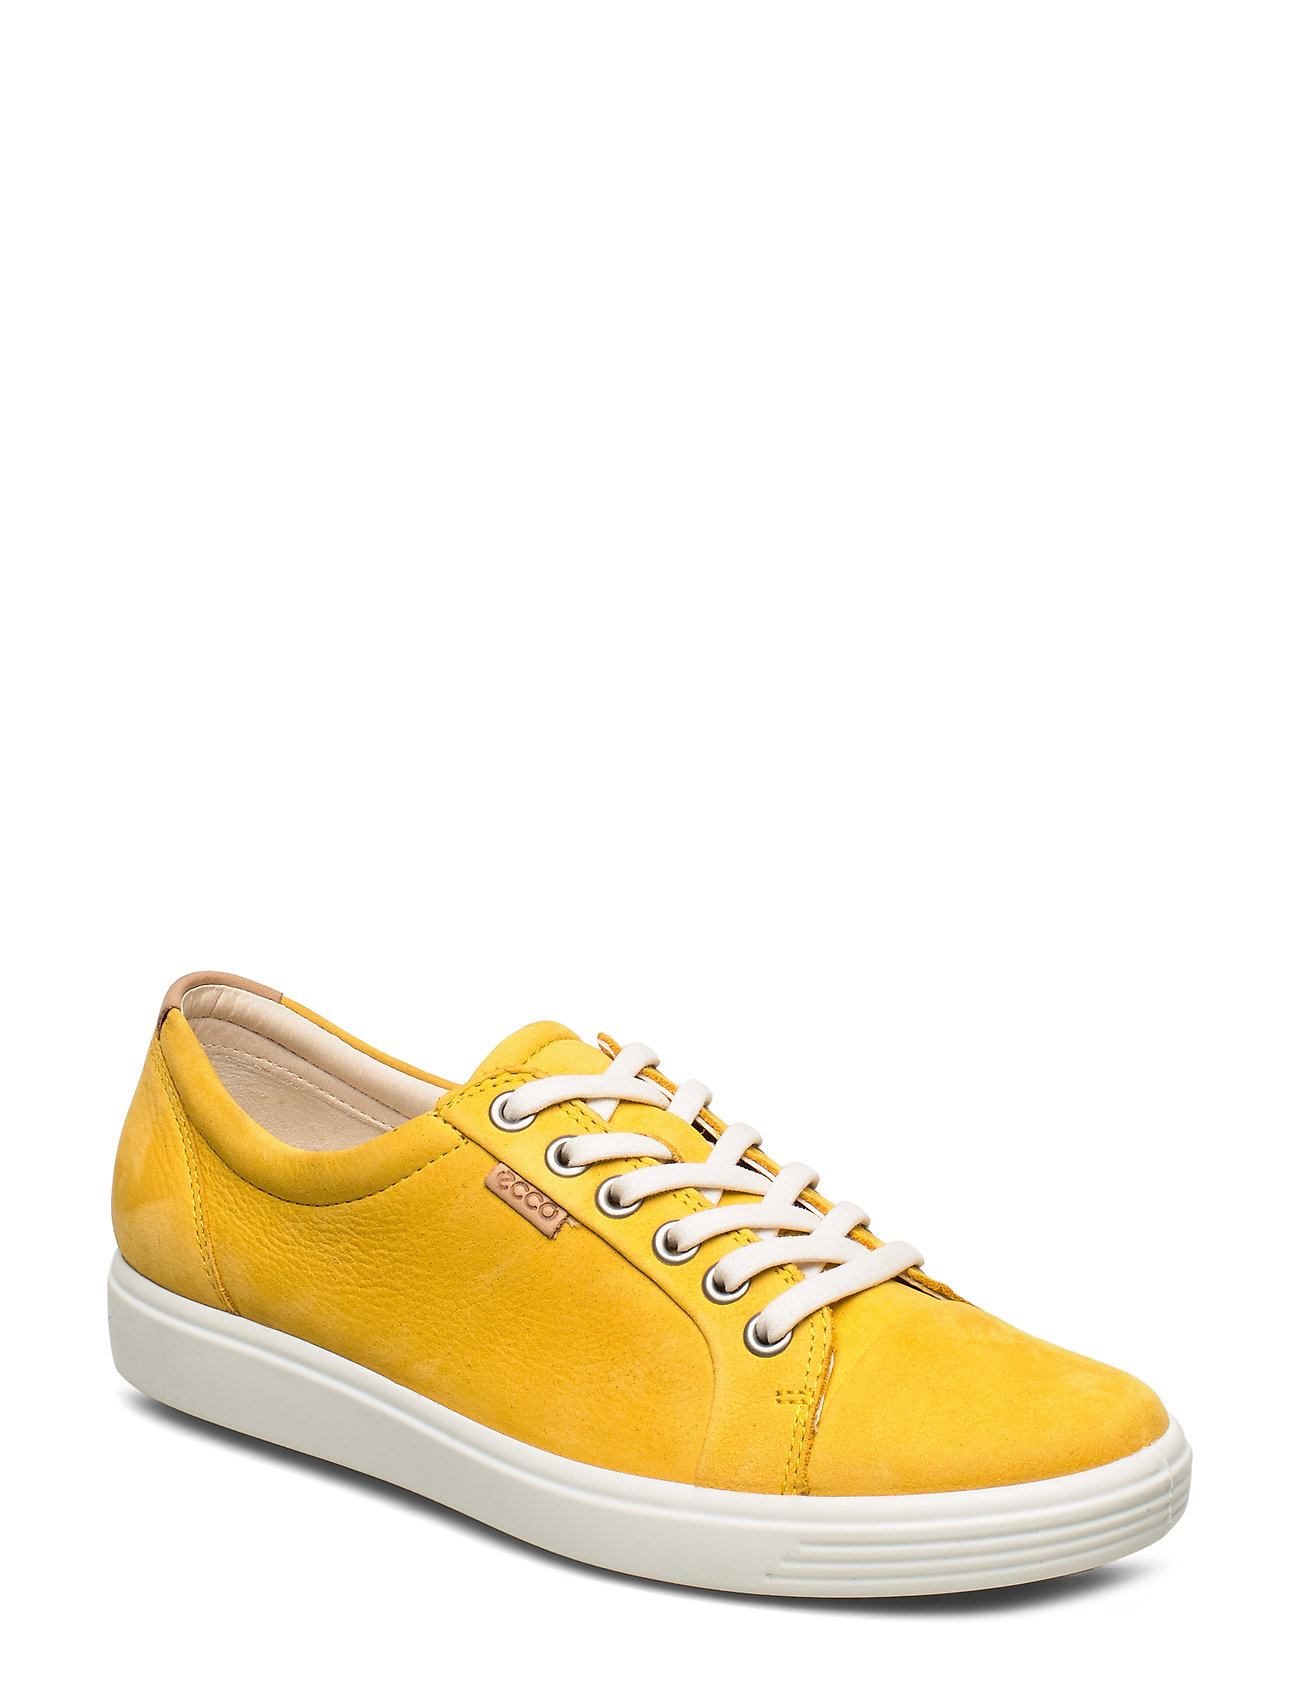 Image of Soft 7 W Low-top Sneakers Gul ECCO (3305101729)